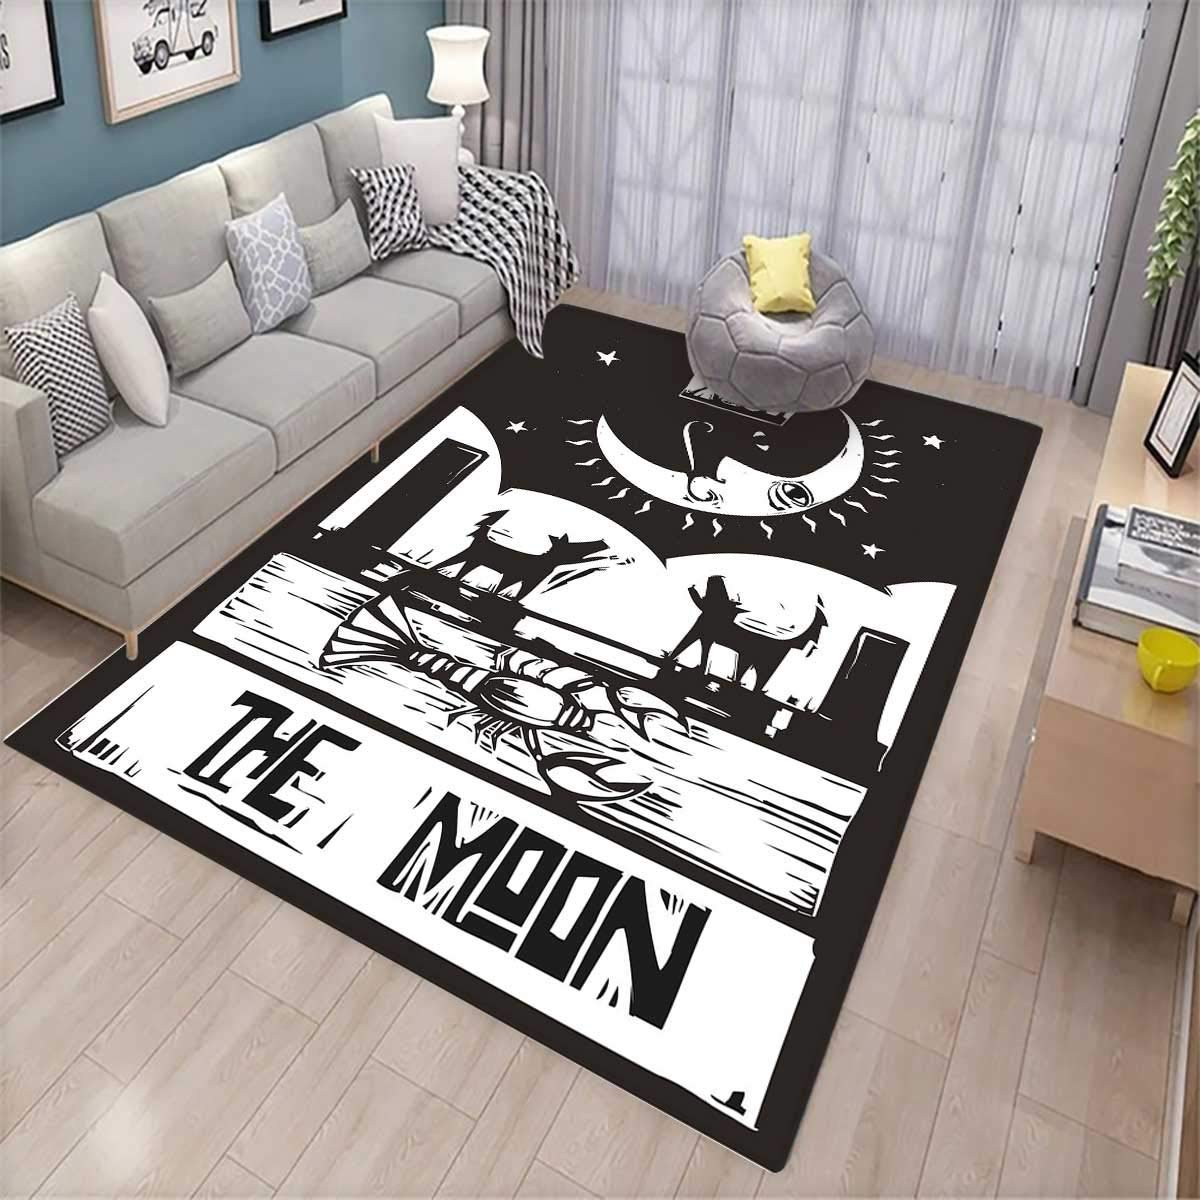 Moon Extra Large Area Rug Brown White Drawing Lobster Wolves Crescent Moon Stars Tarot Card Design Bath Mat for tub Charcoal Grey White